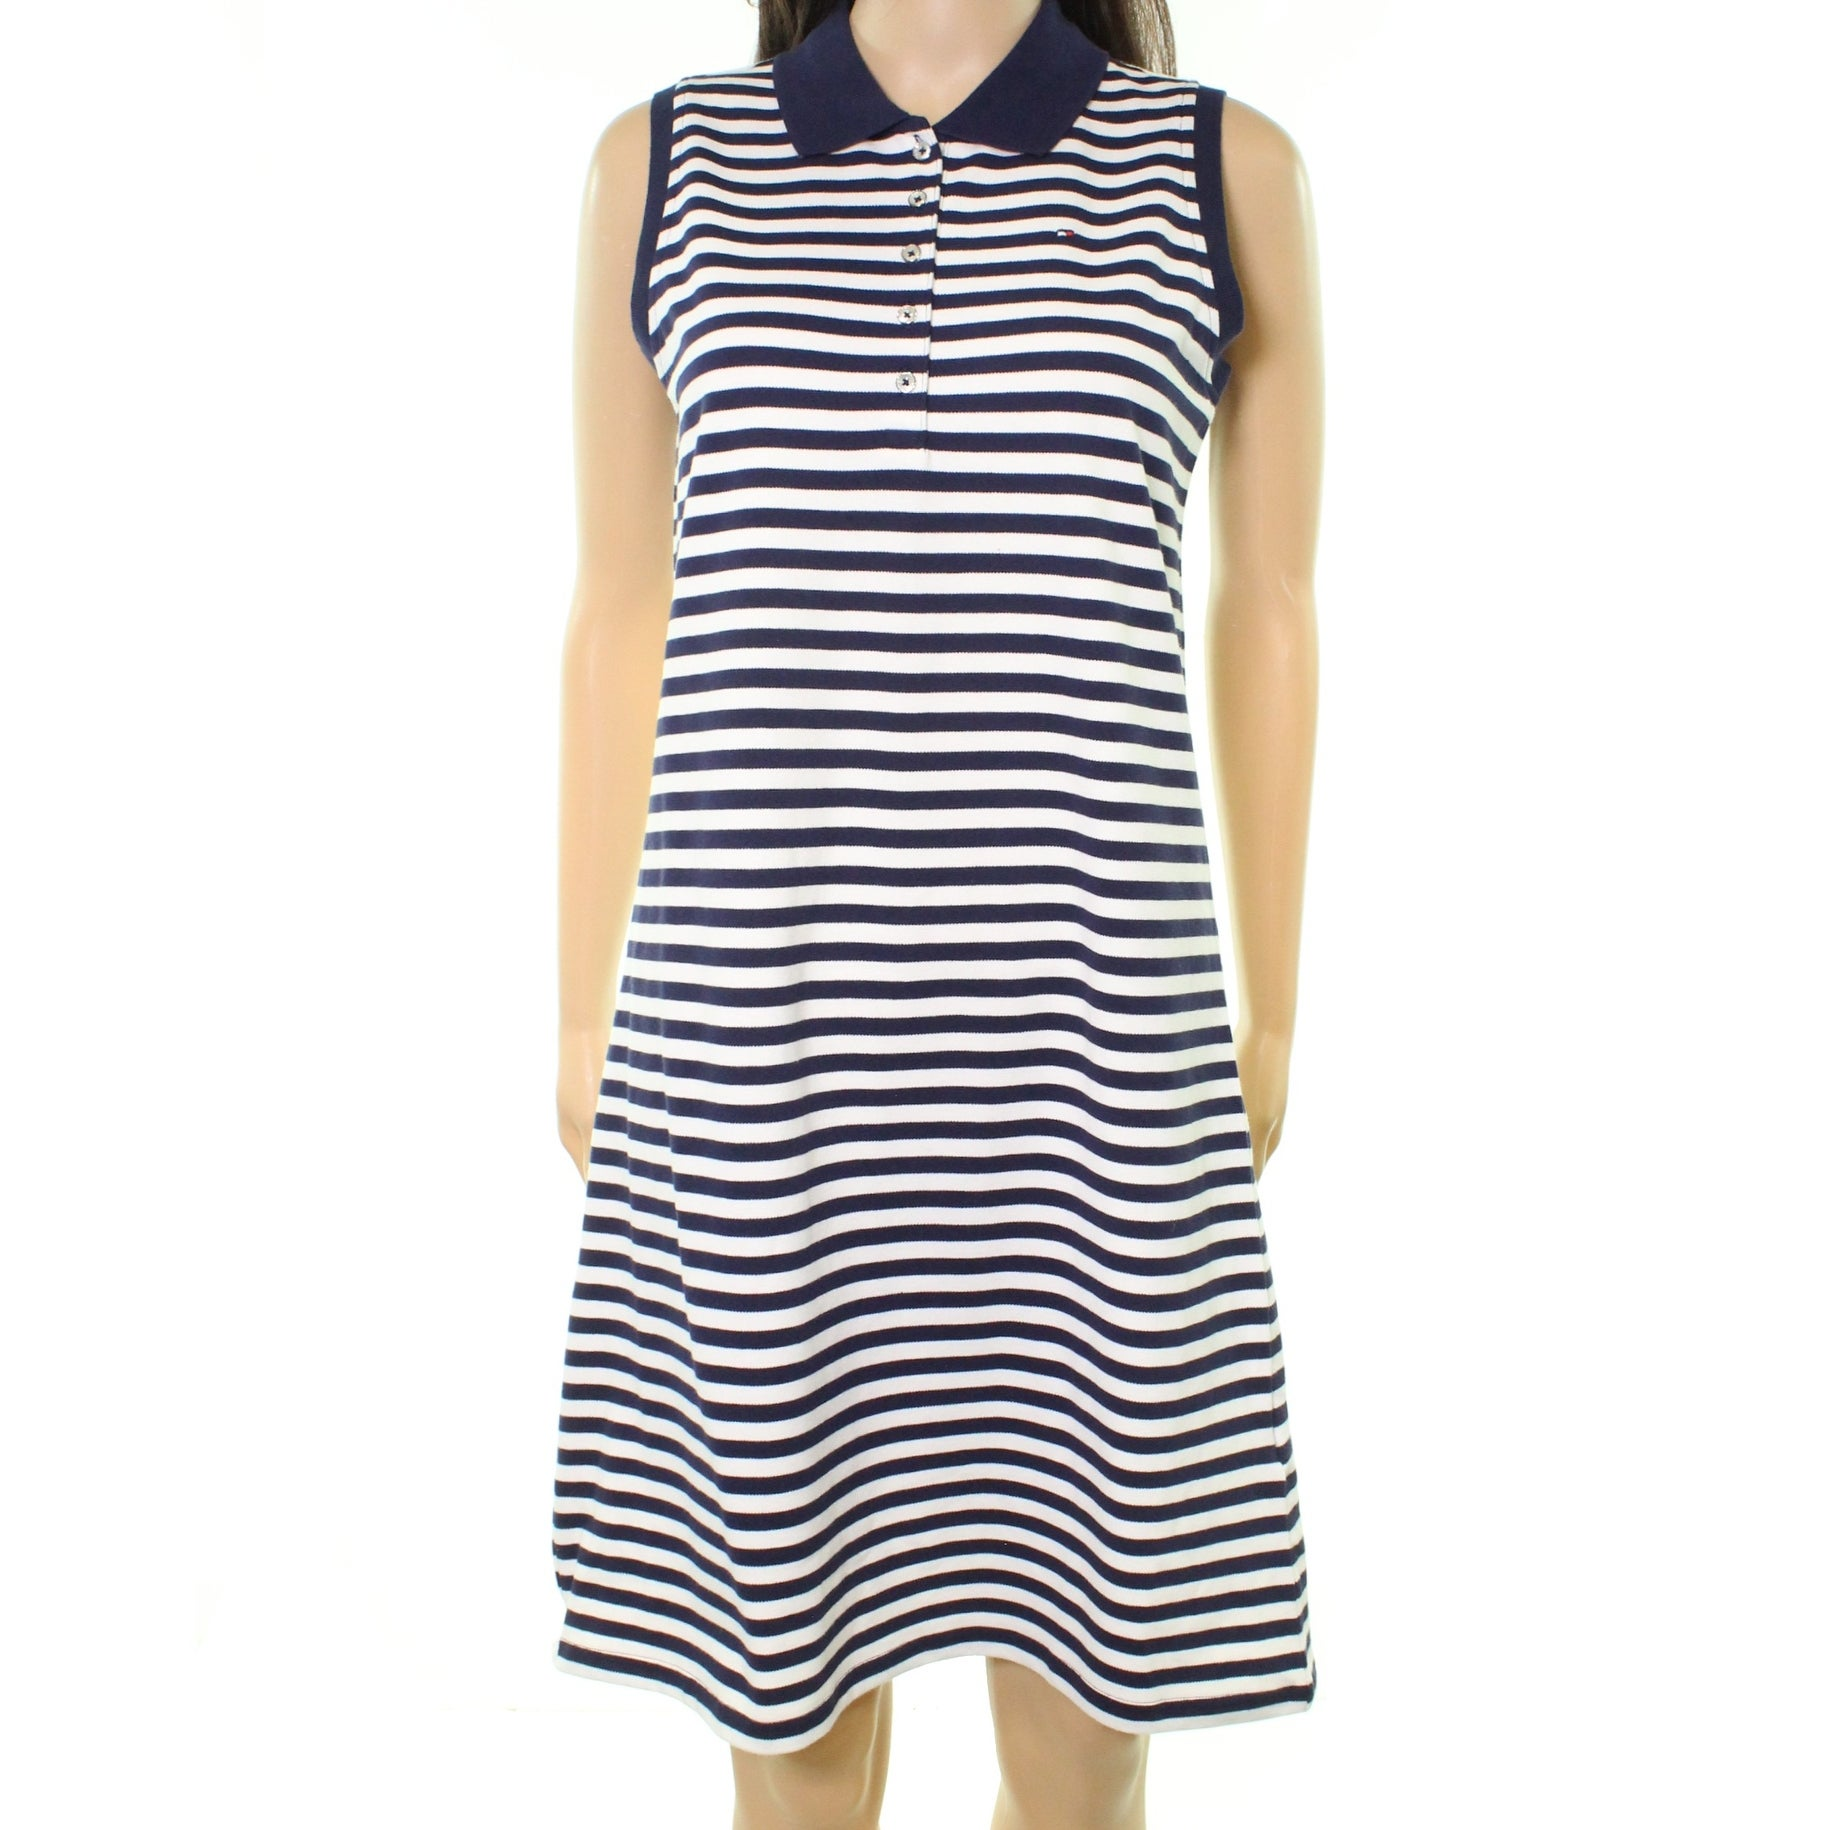 Shop Tommy Hilfiger New Navy Blue Womens Size Xl Striped Polo Shirt